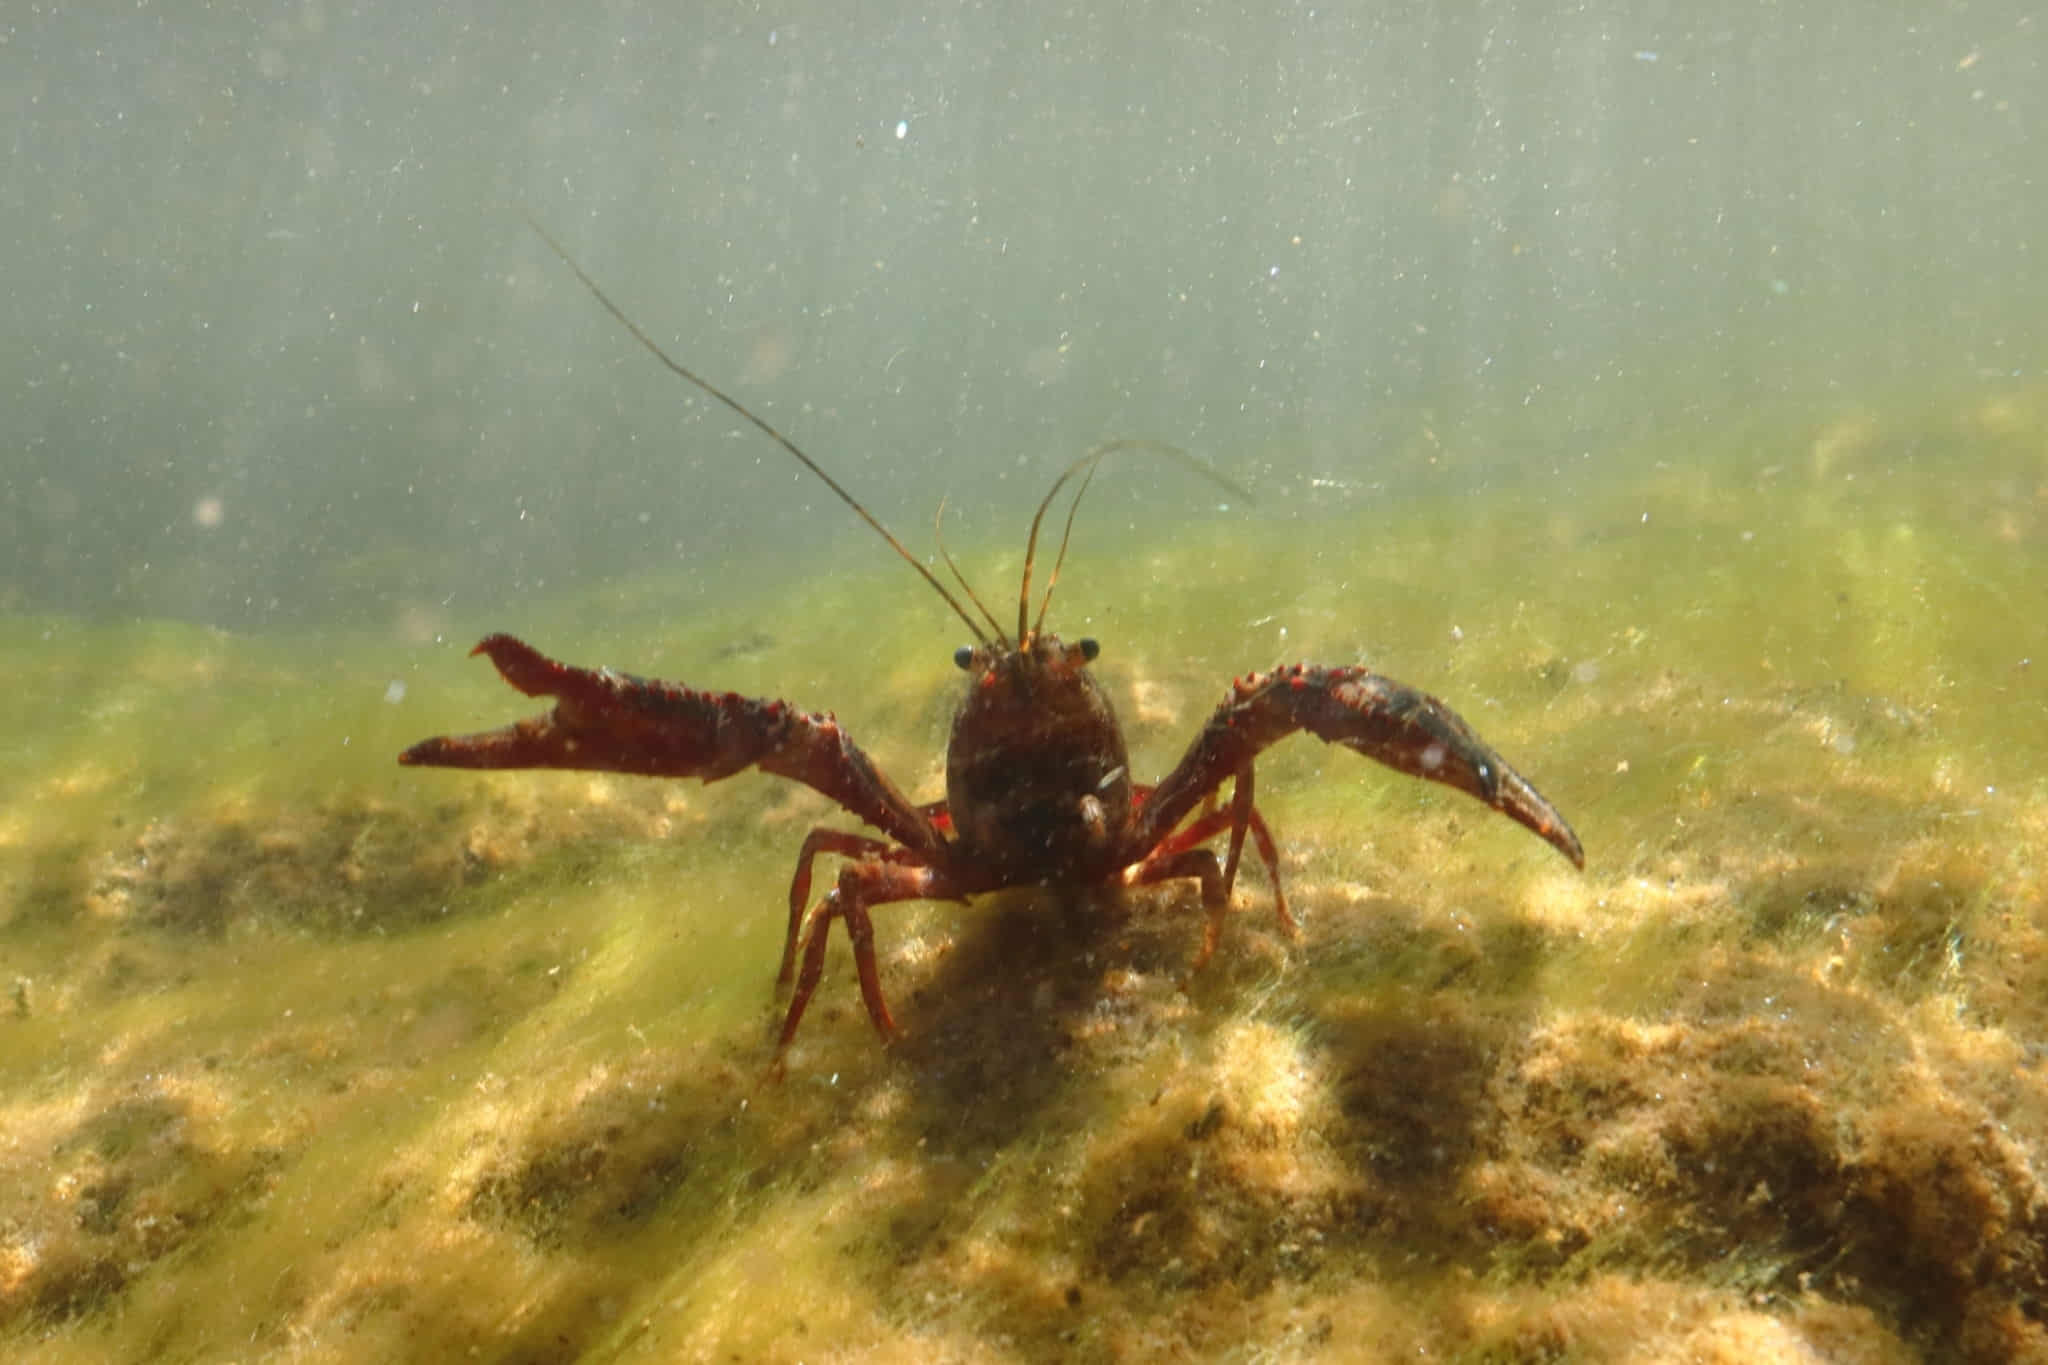 best time to catch crawfish in illinois